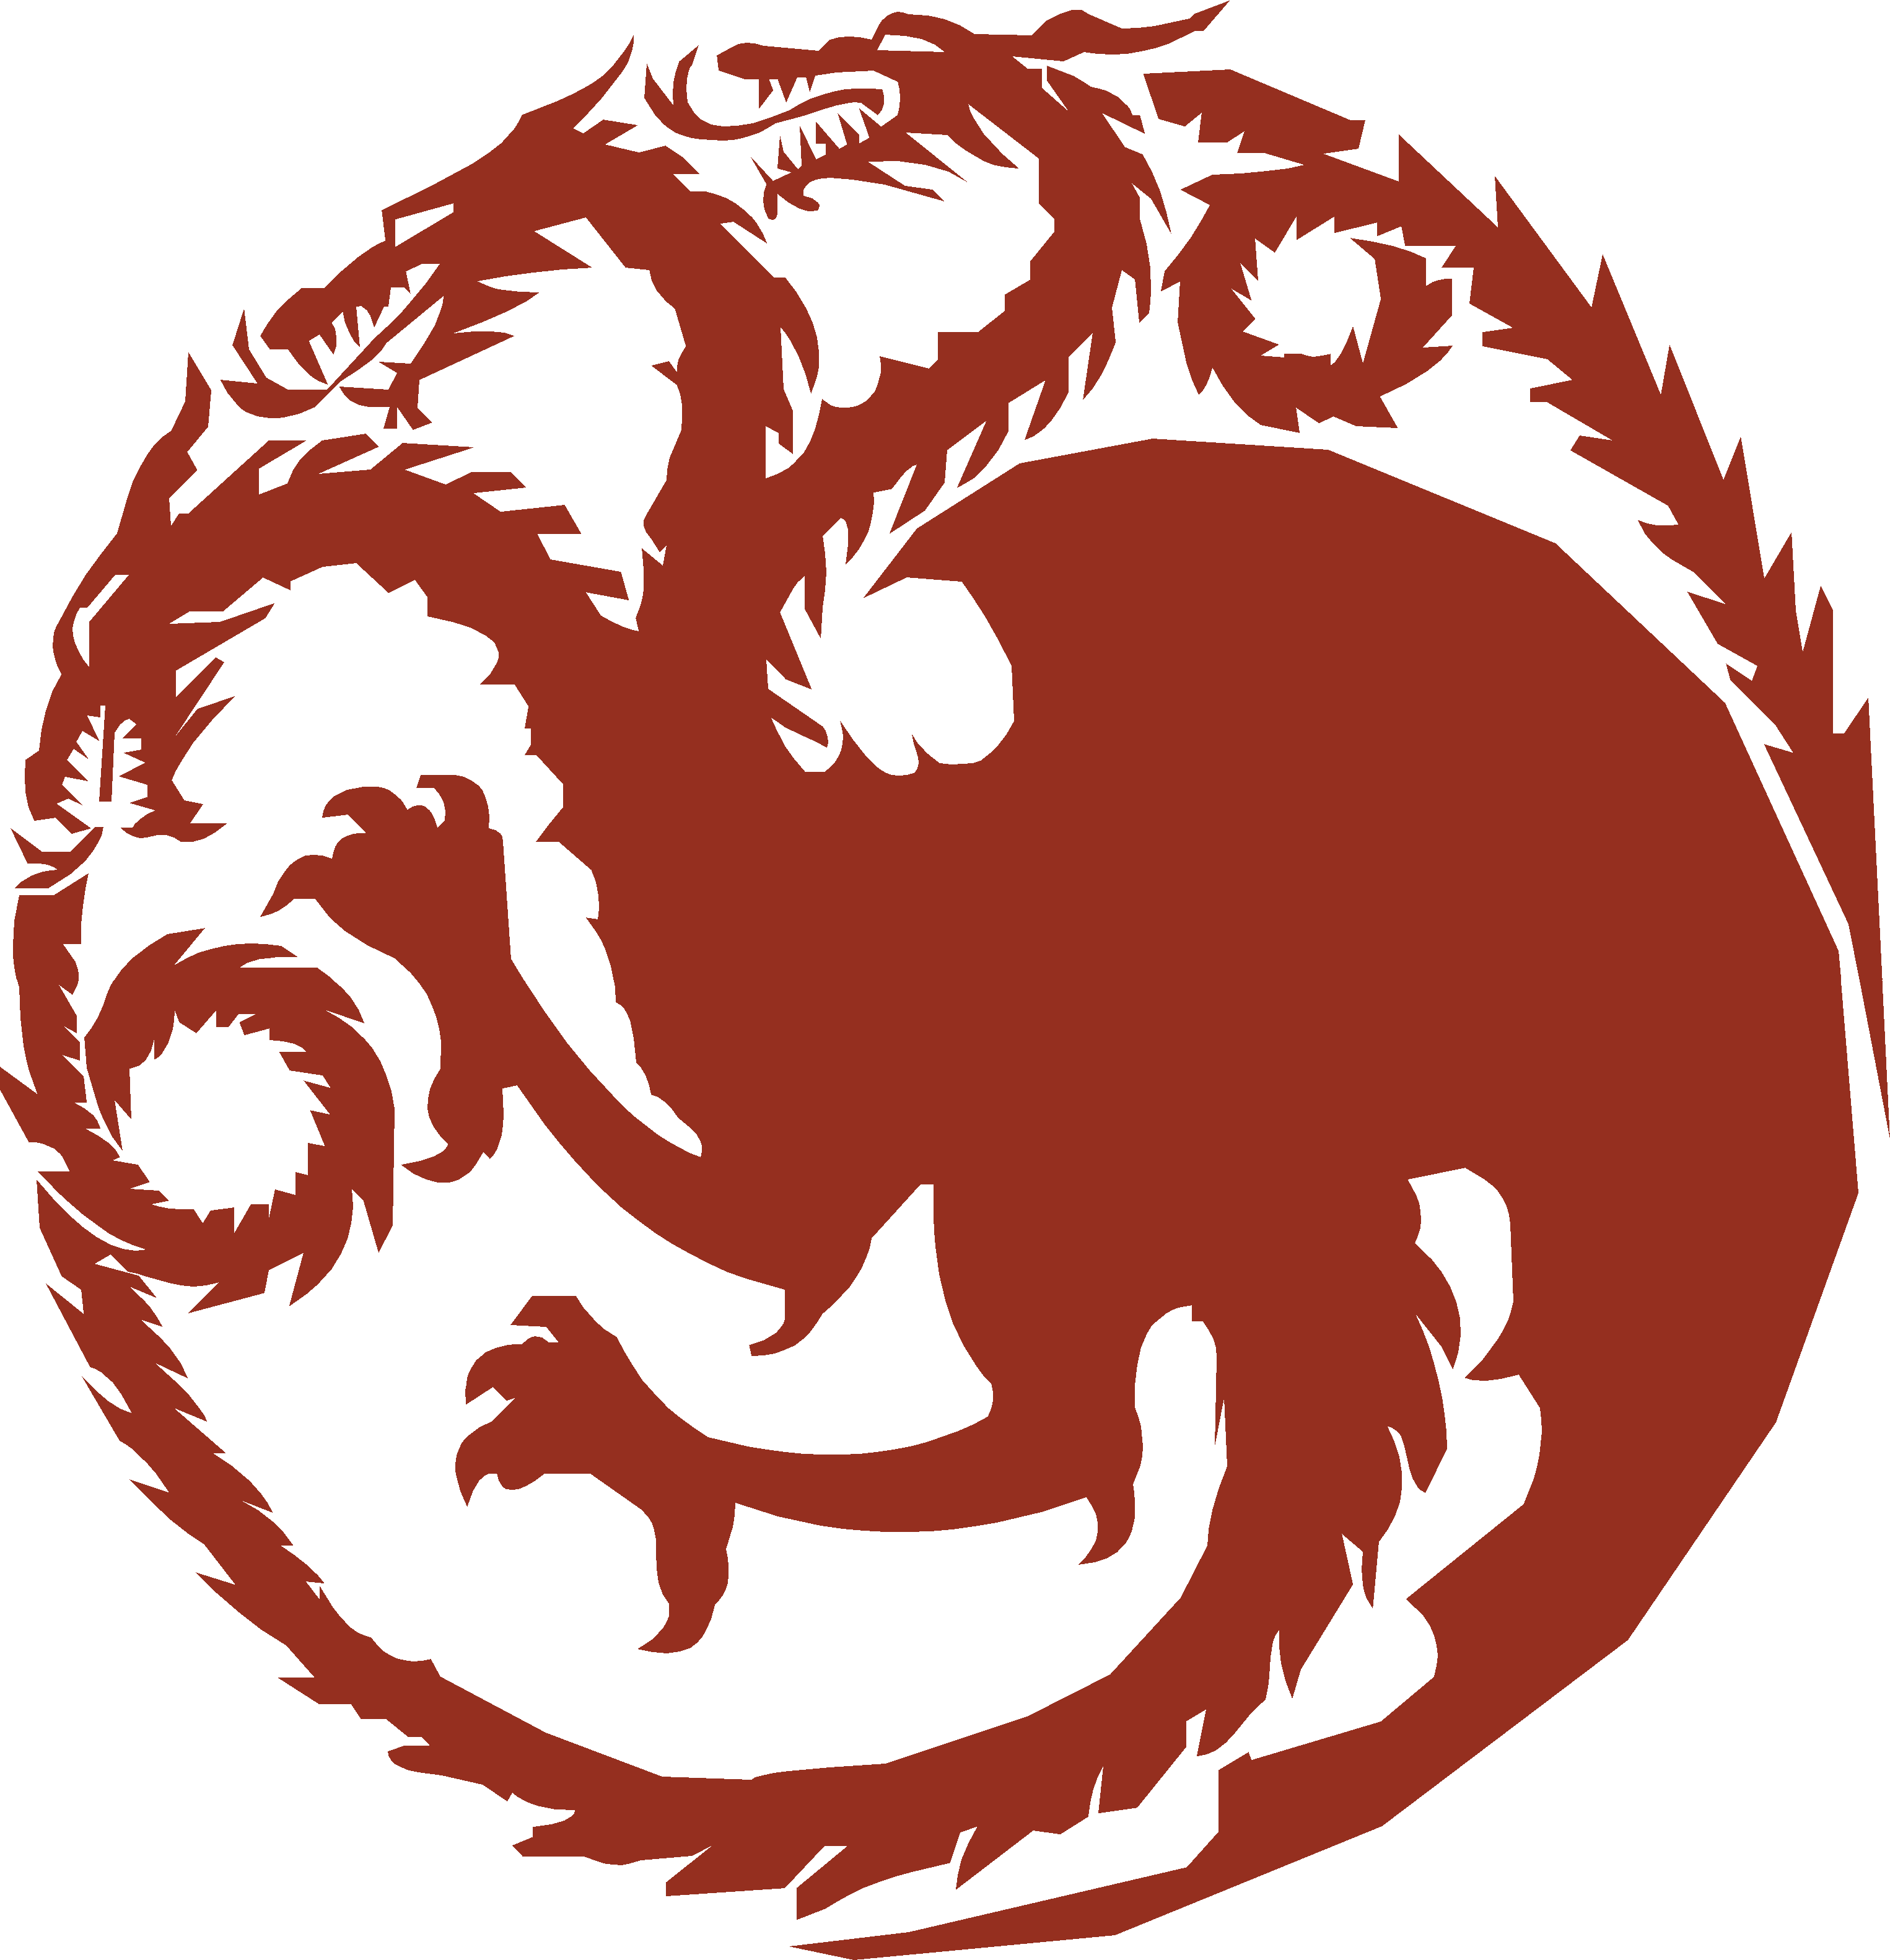 House stark clipart image black and white library snQuE77.png (3051×3164) | Game of Thrones | Pinterest | Daenerys ... image black and white library